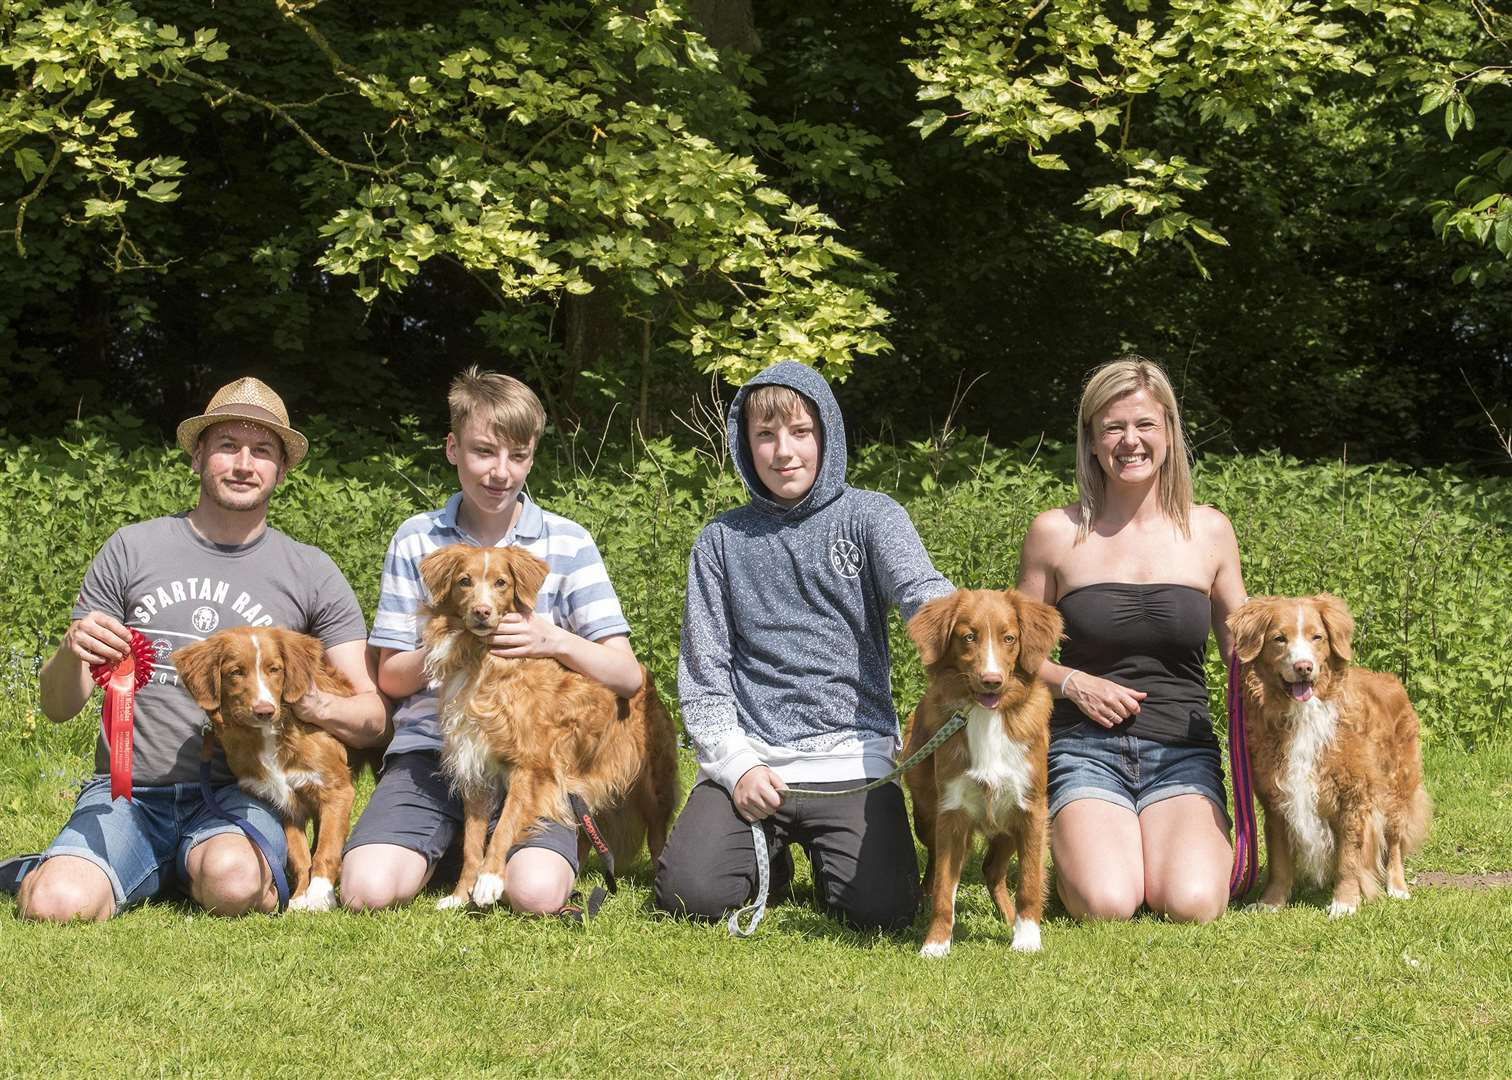 Best dog family Matthew Goulding and Sam Savory with Joshua and Ethan Goulding and their family of nova scotia duck tolling retrievers Picture by Mark Westley (2091499)